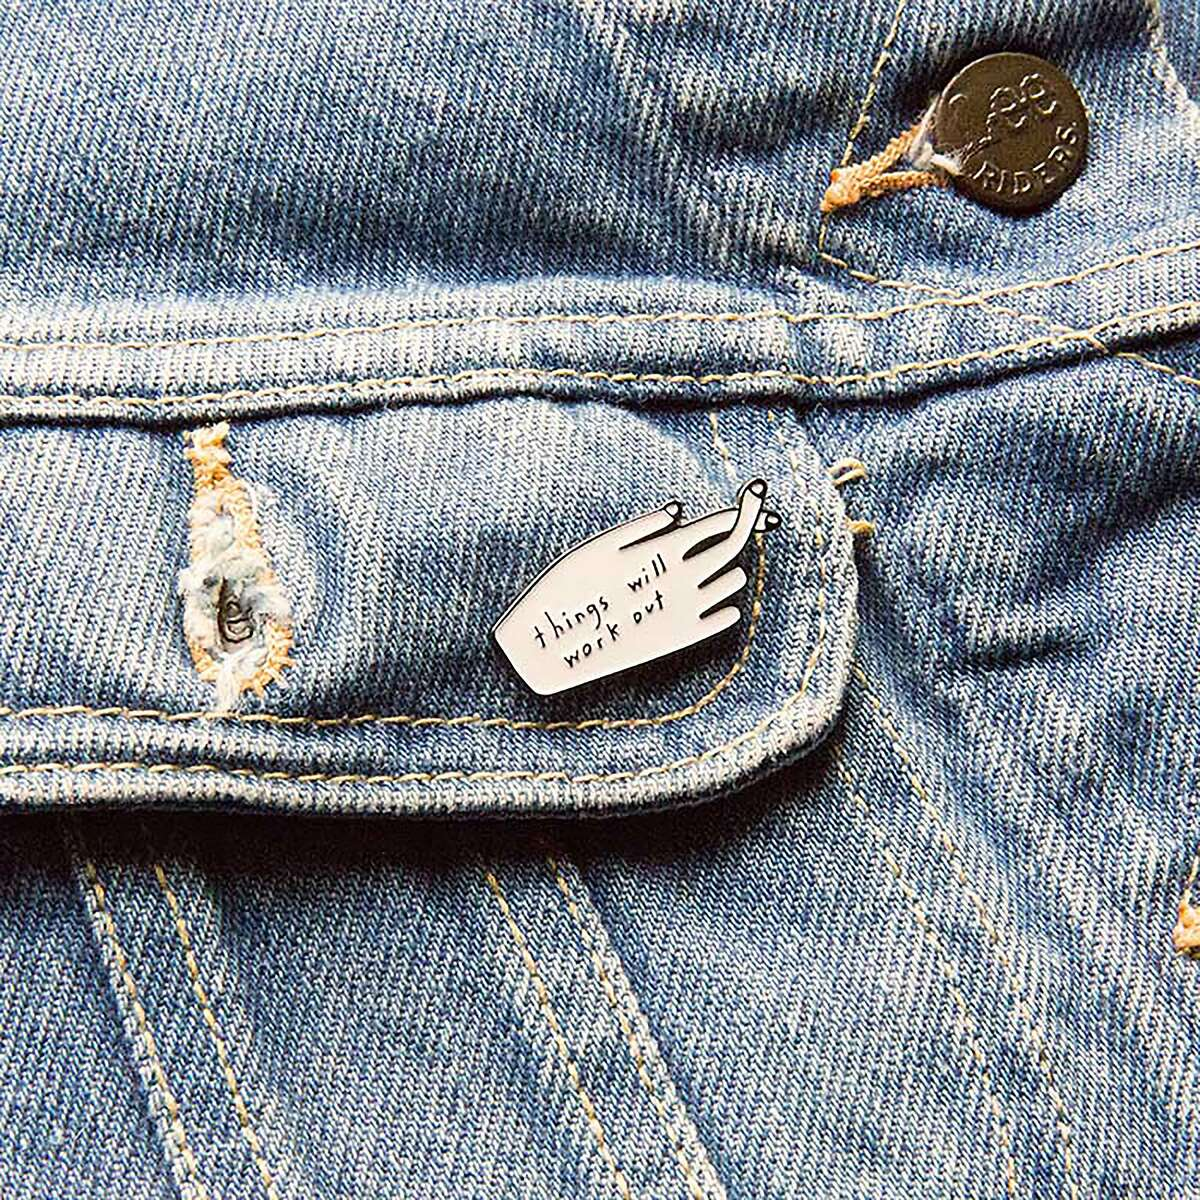 A little positive affirmation goes a long way � especially when you�re challenging the patriarchy. This Things Will Work Out Pin is made by Oakland-based printmakers People I�ve Loved. $15, The General Store, or www.shop-generalstore.com.